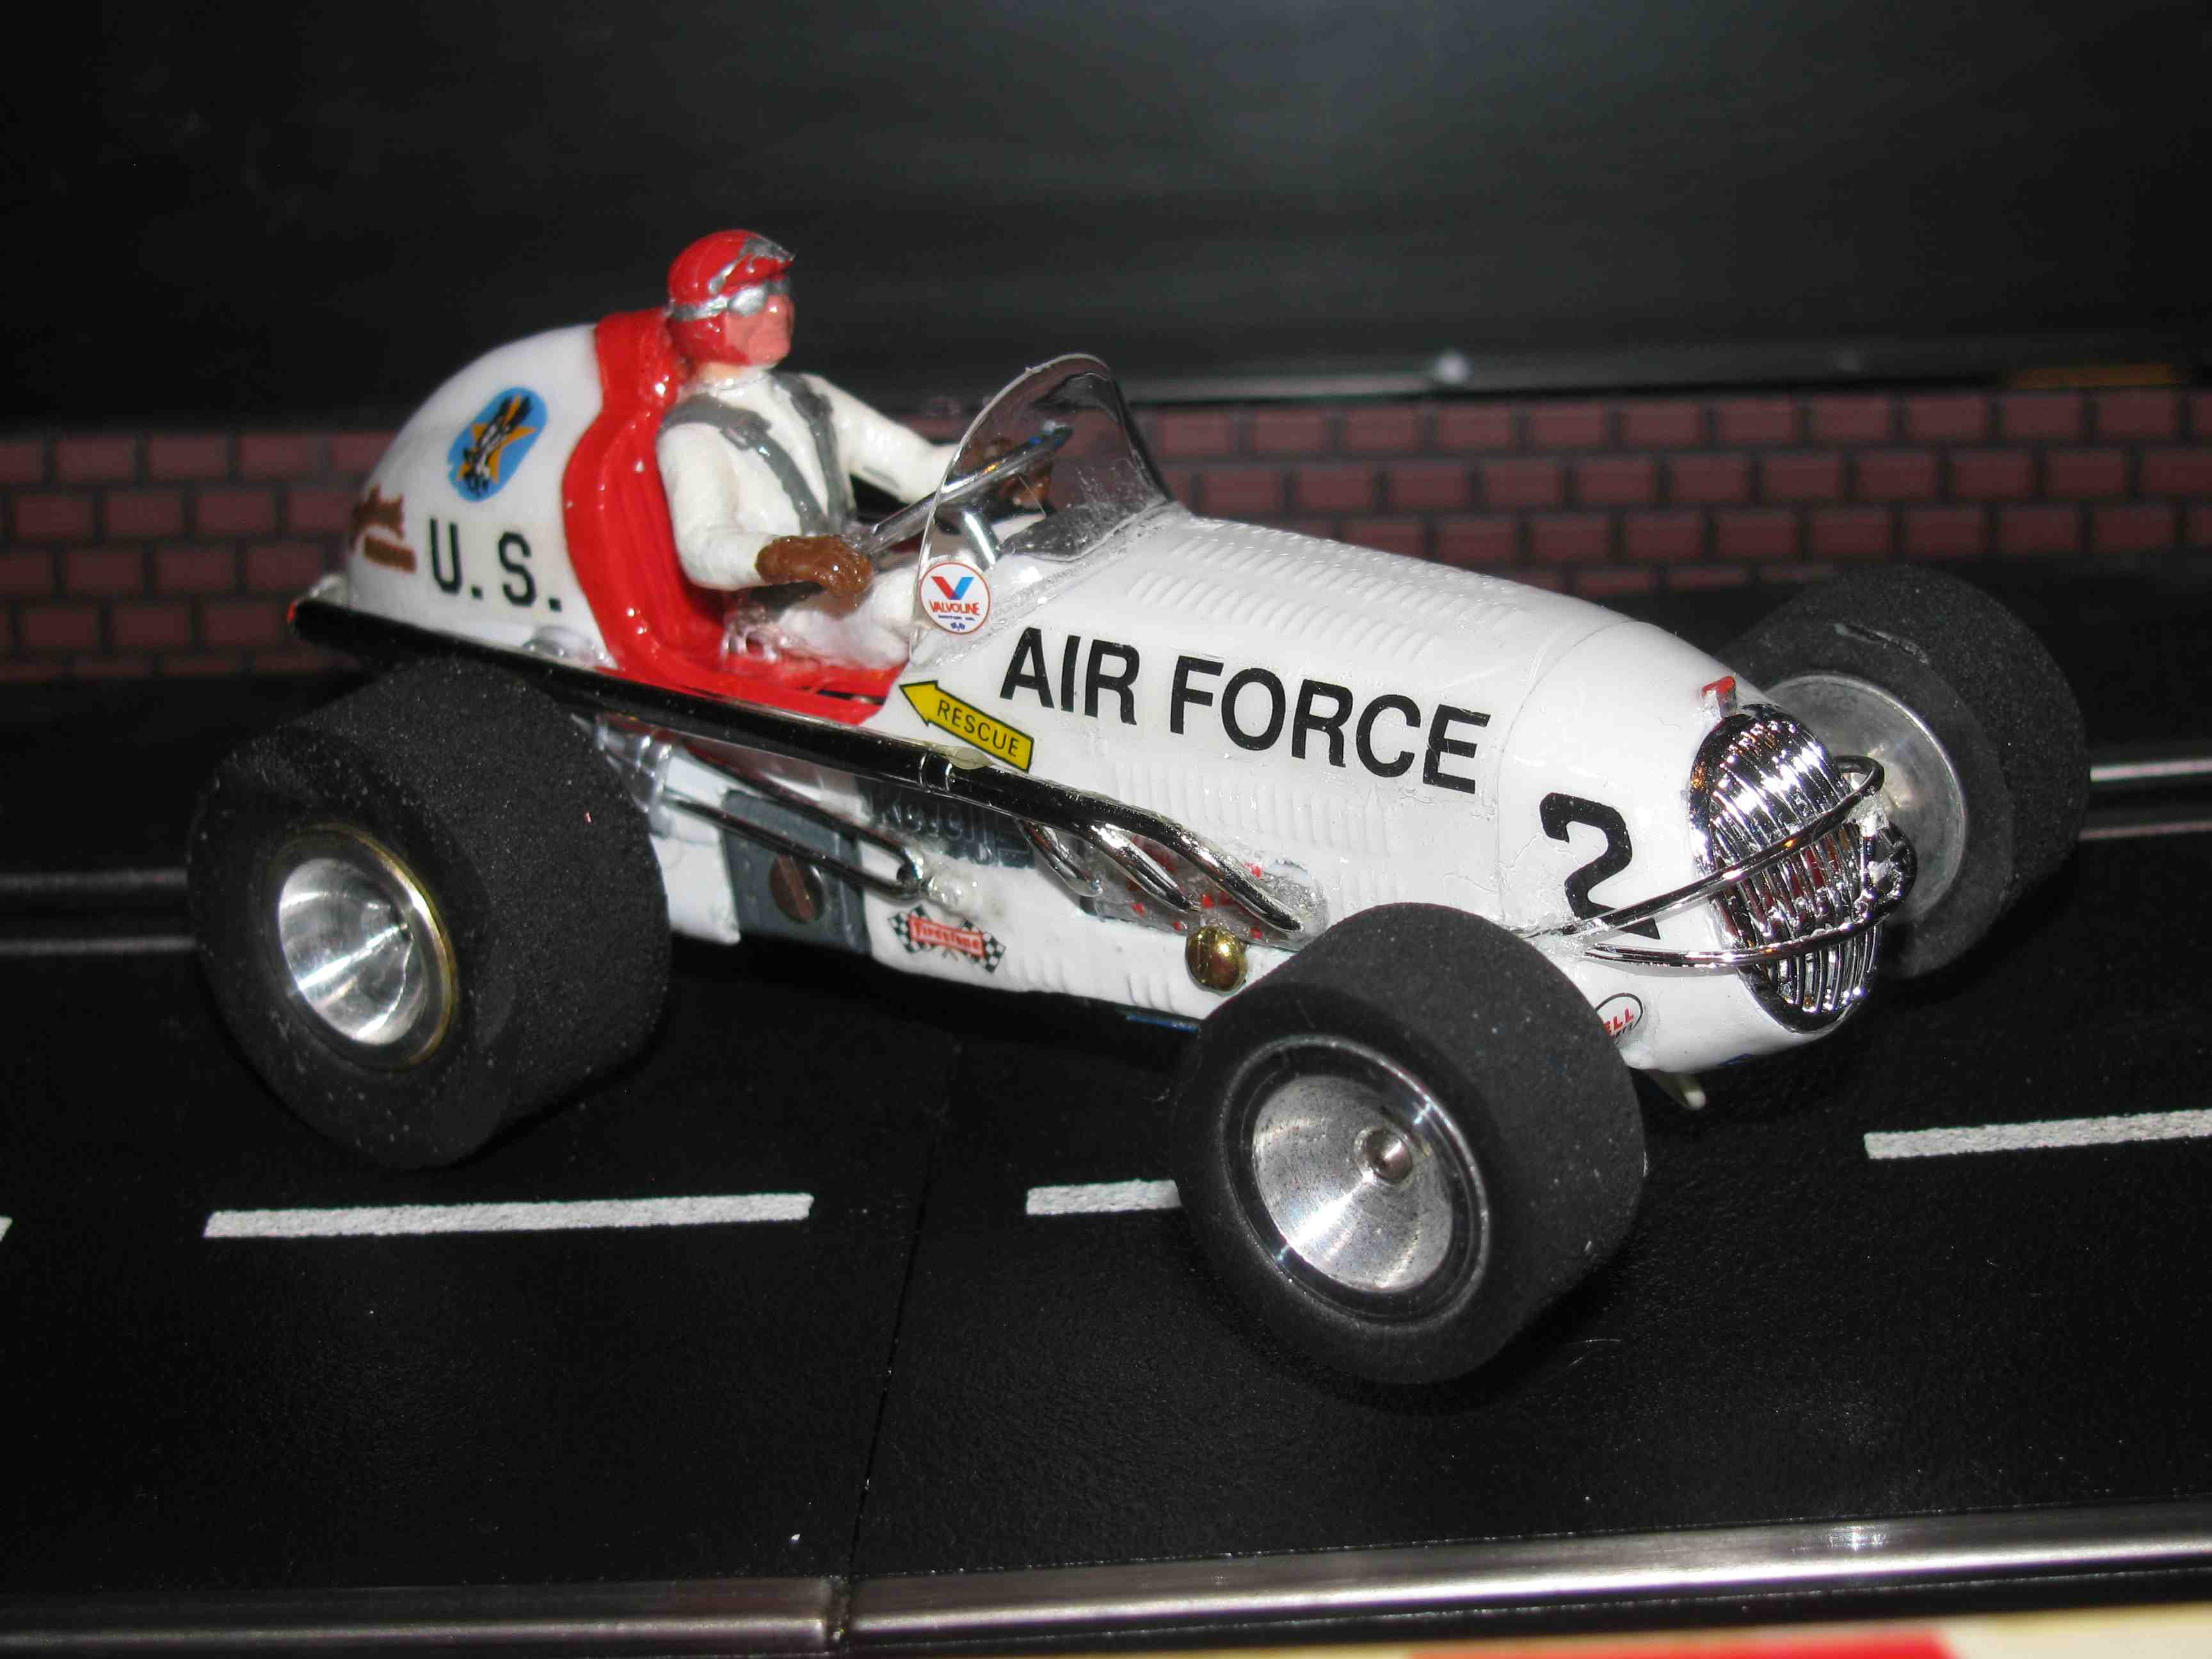 "* SOLD * Vintage Revell Midget Racer ""Air Force"" Race Team Slot Car 1/32 Scale – White – Car #2 (Limited Edition Set of Four - 2 of 4)"